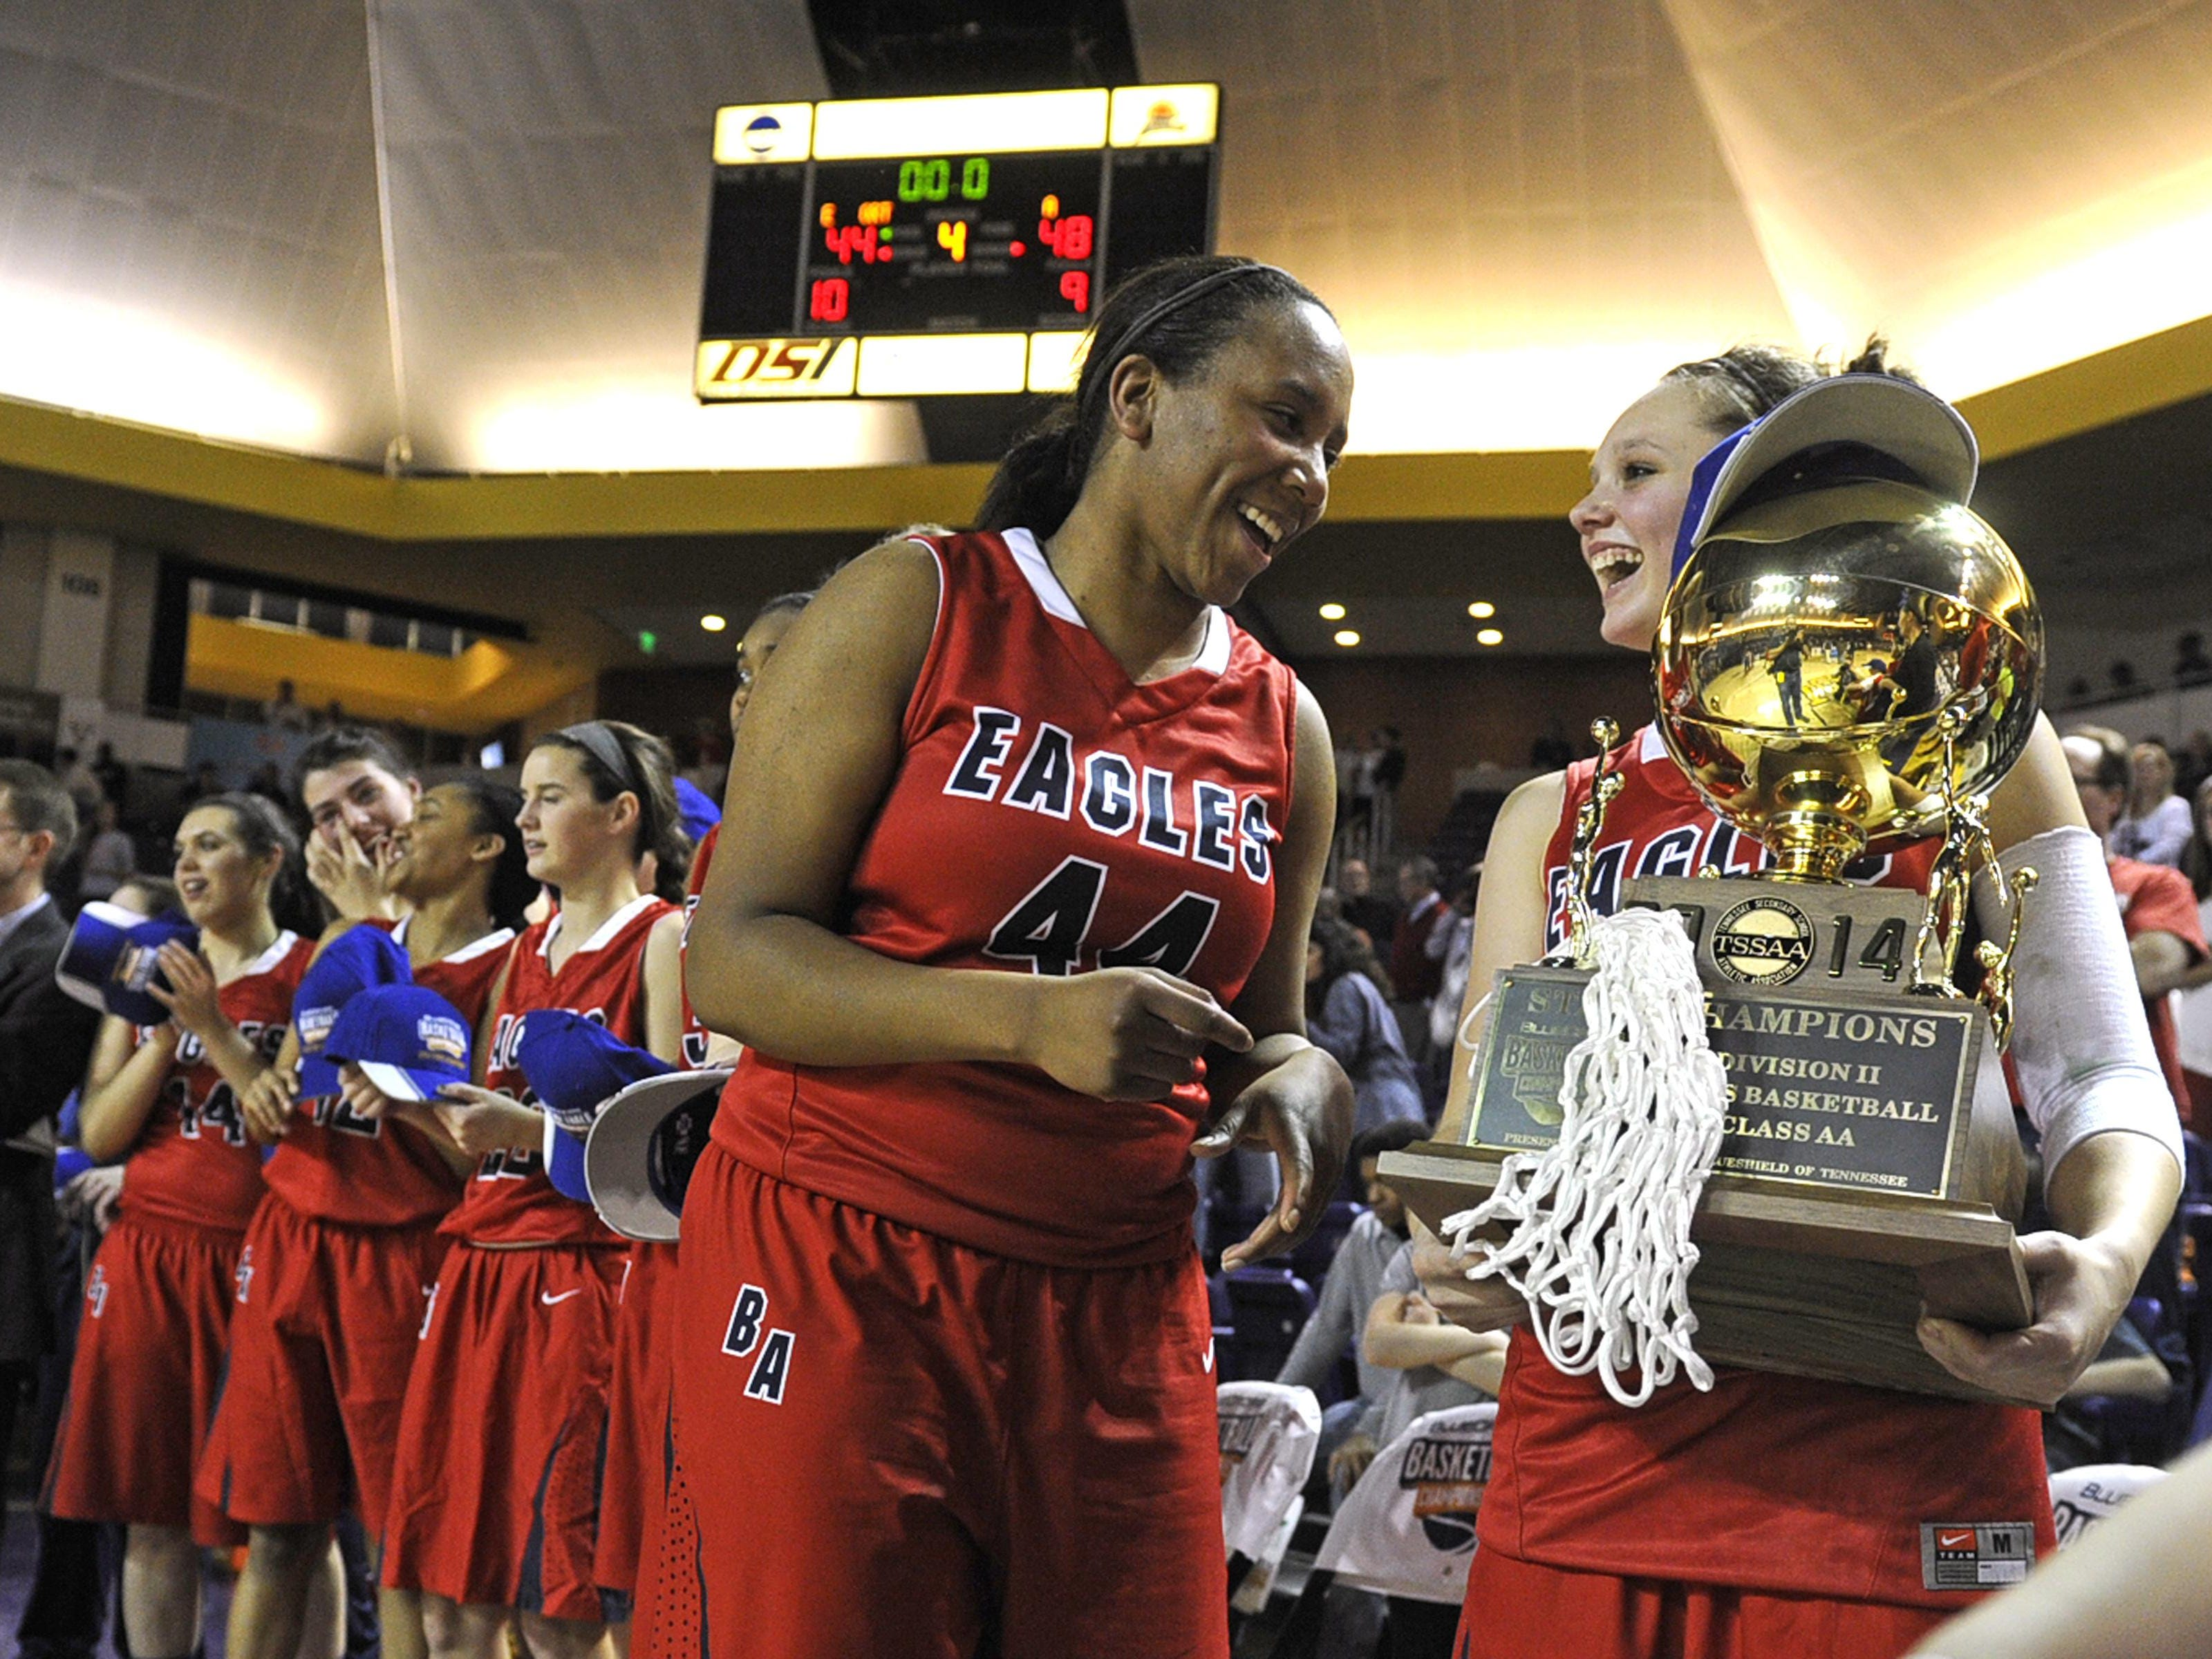 Brentwood Academy's Tyra Avery (44) and Maren Kreid (10) celebrate their 48-44 win over Ensworth in the DII-AA girls basketball state championship game at Lipscomb University in 2014 in Nashville.